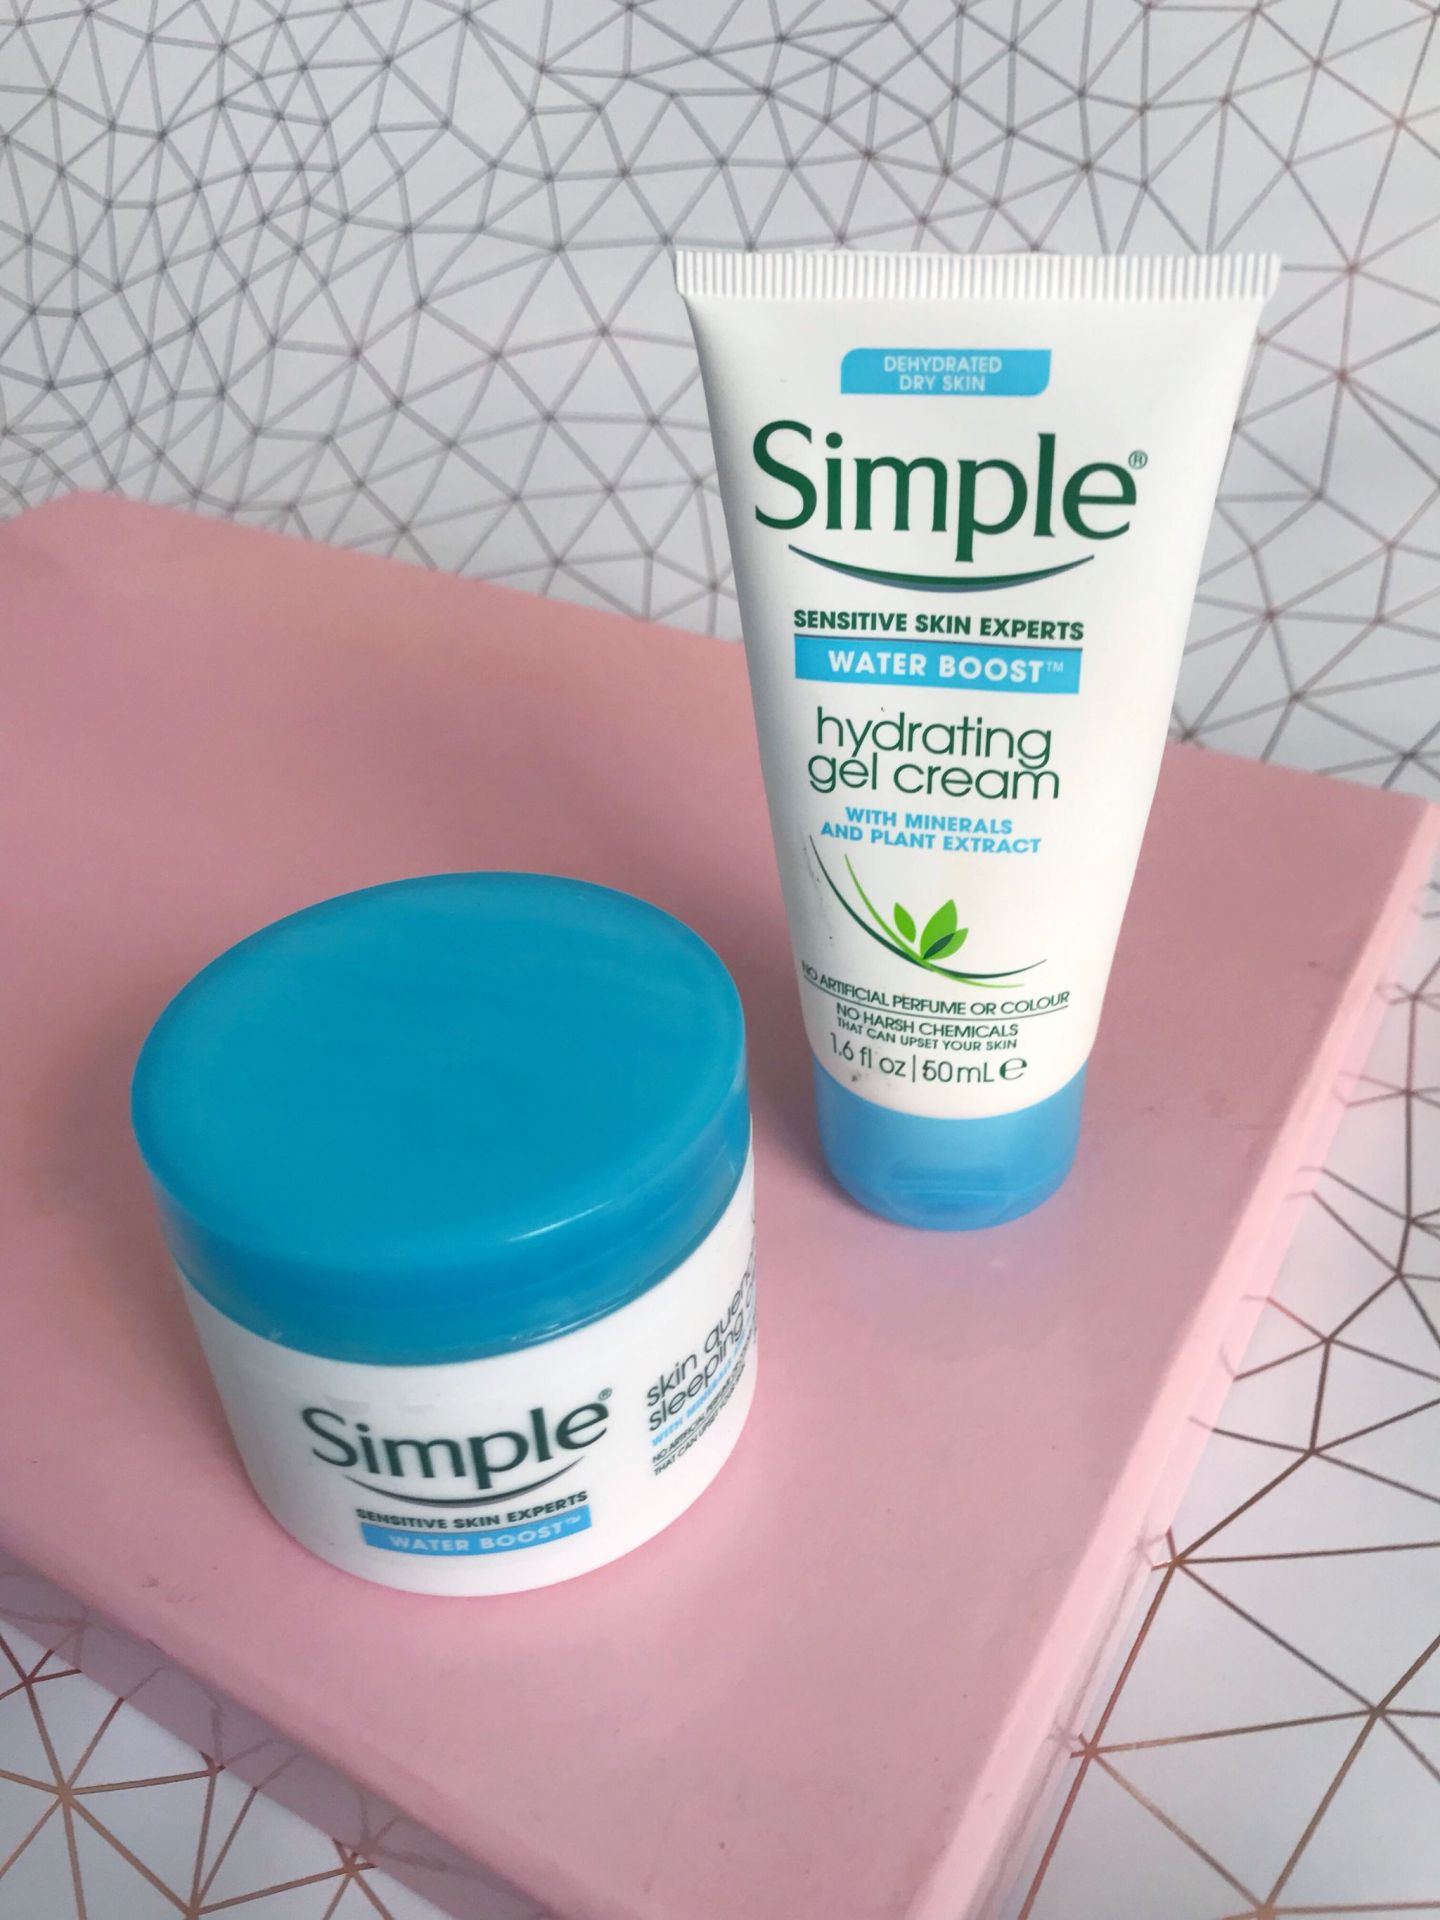 Simple Water Boost skincare range